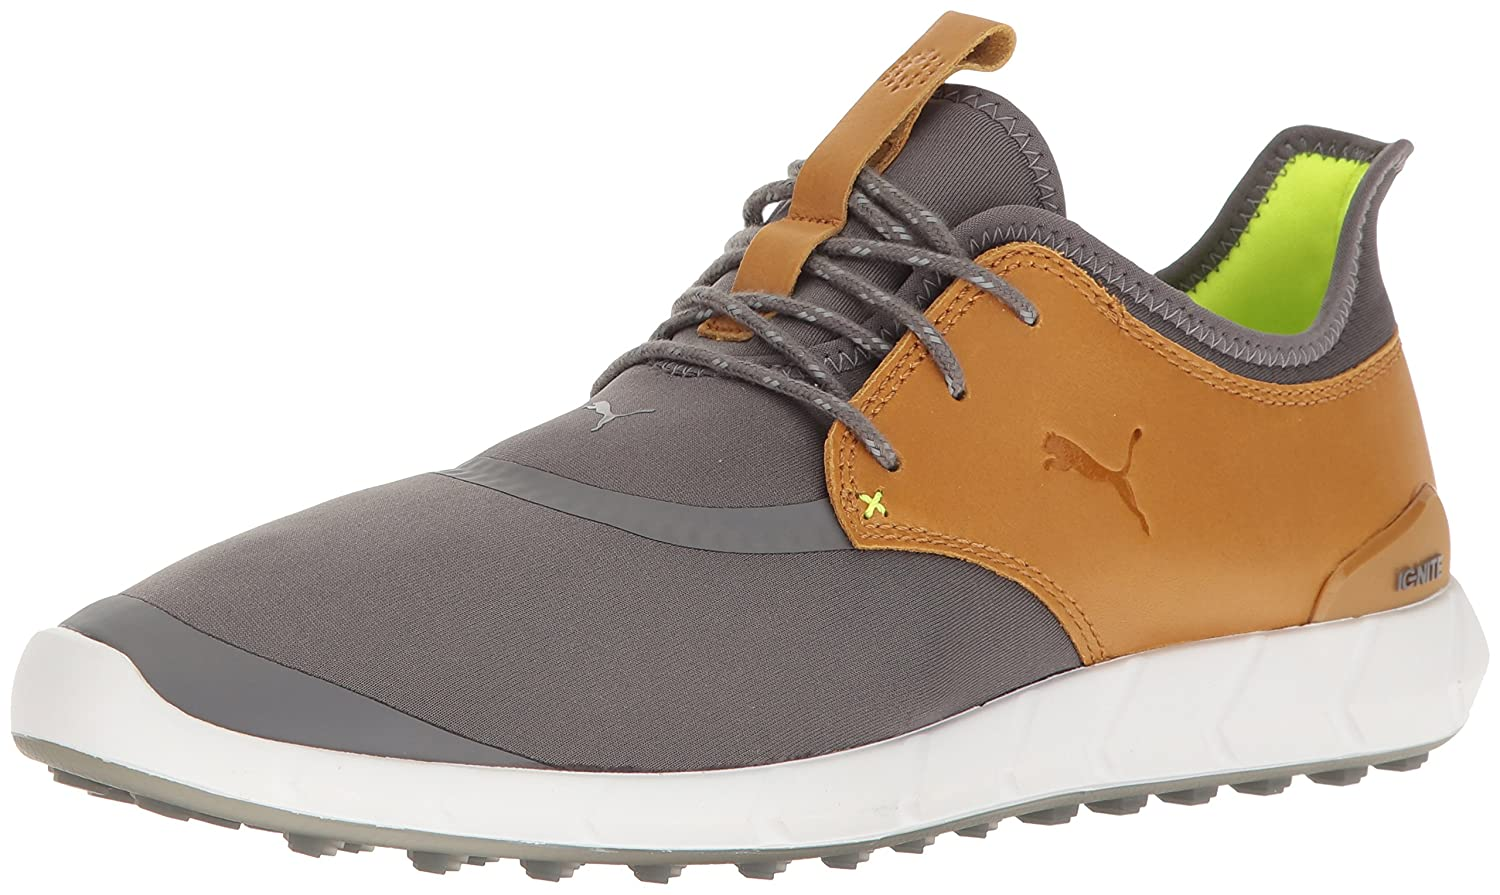 Puma Mens Ignite Spikeless Sport Golf Shoe  12 D(M) US Smoked Pearl-cathay Spice